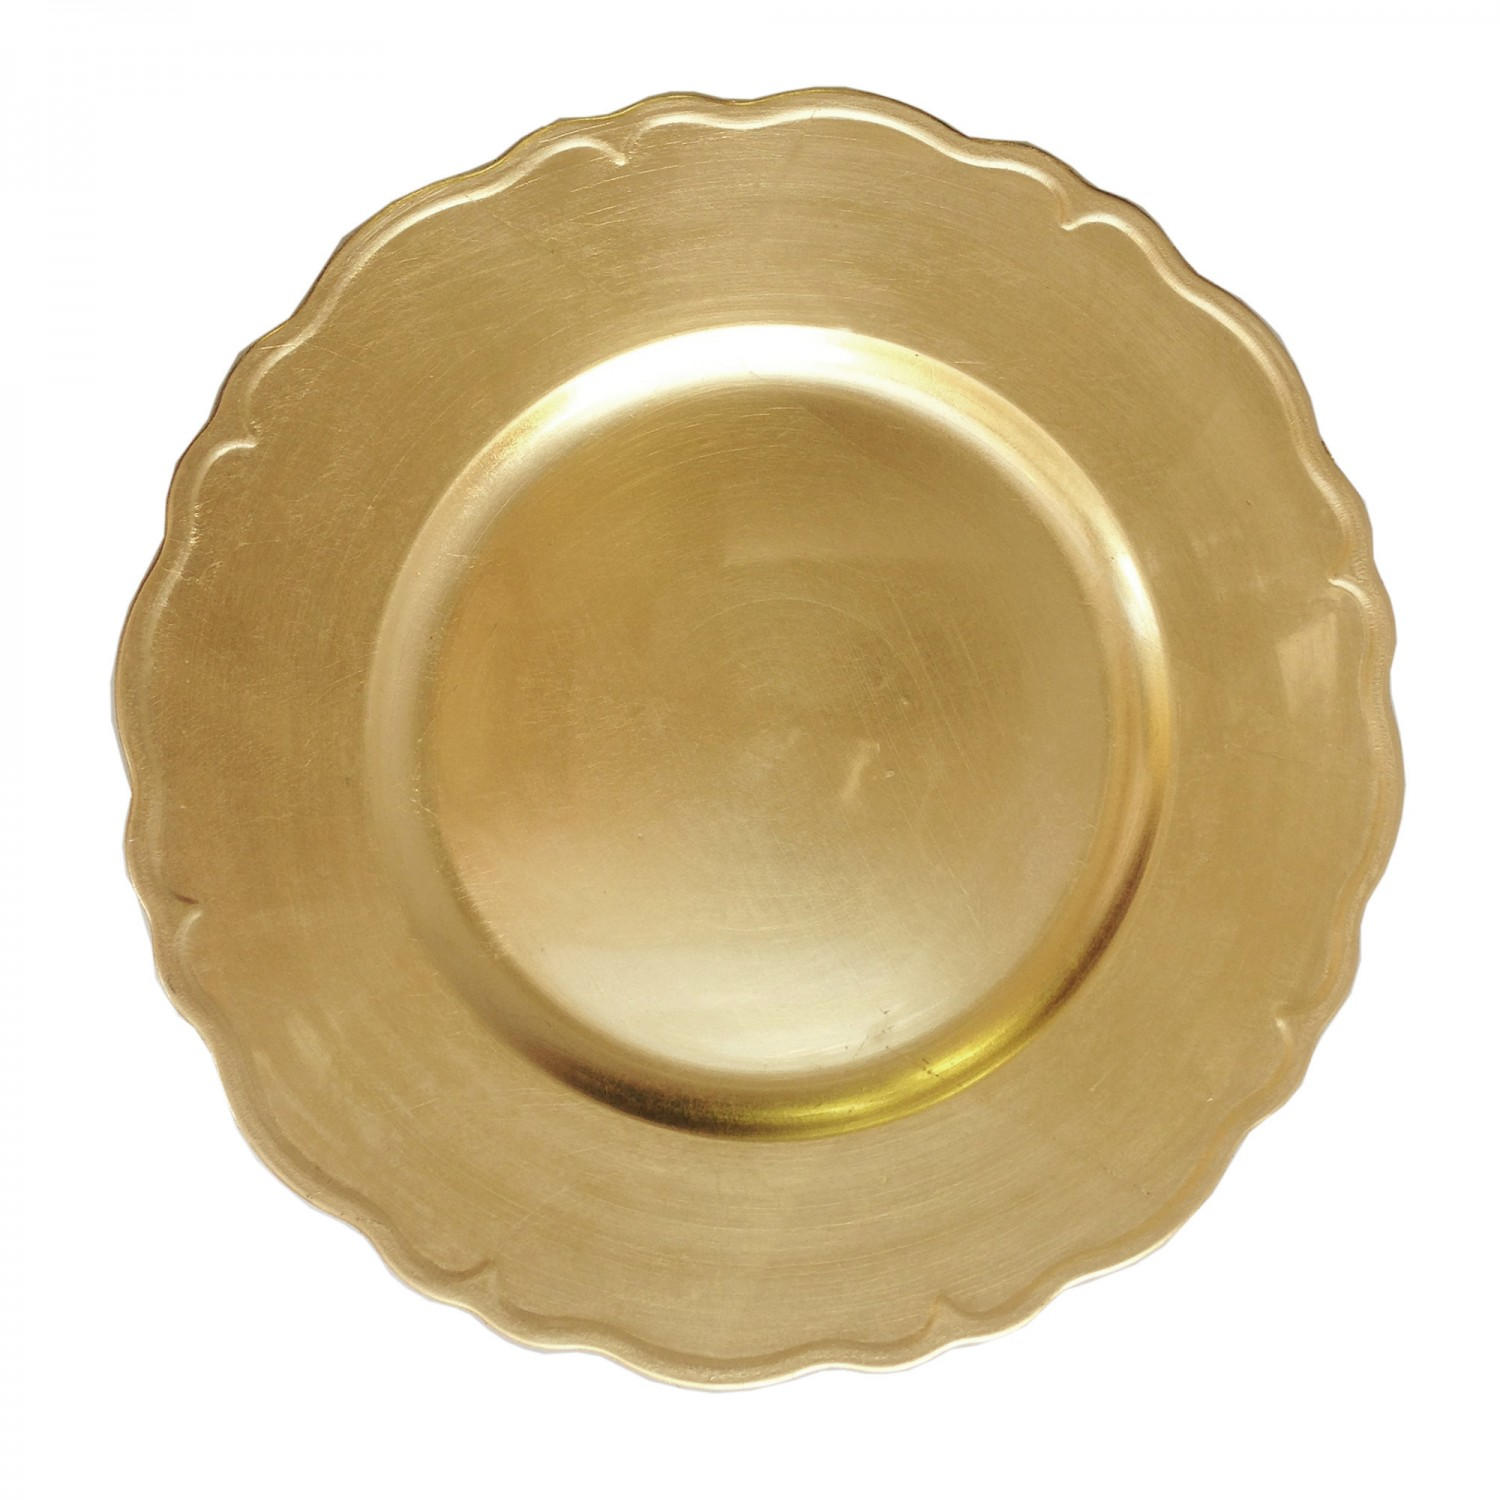 The Jay Companies A215GR Round Gold Regency Charger Plate 13&